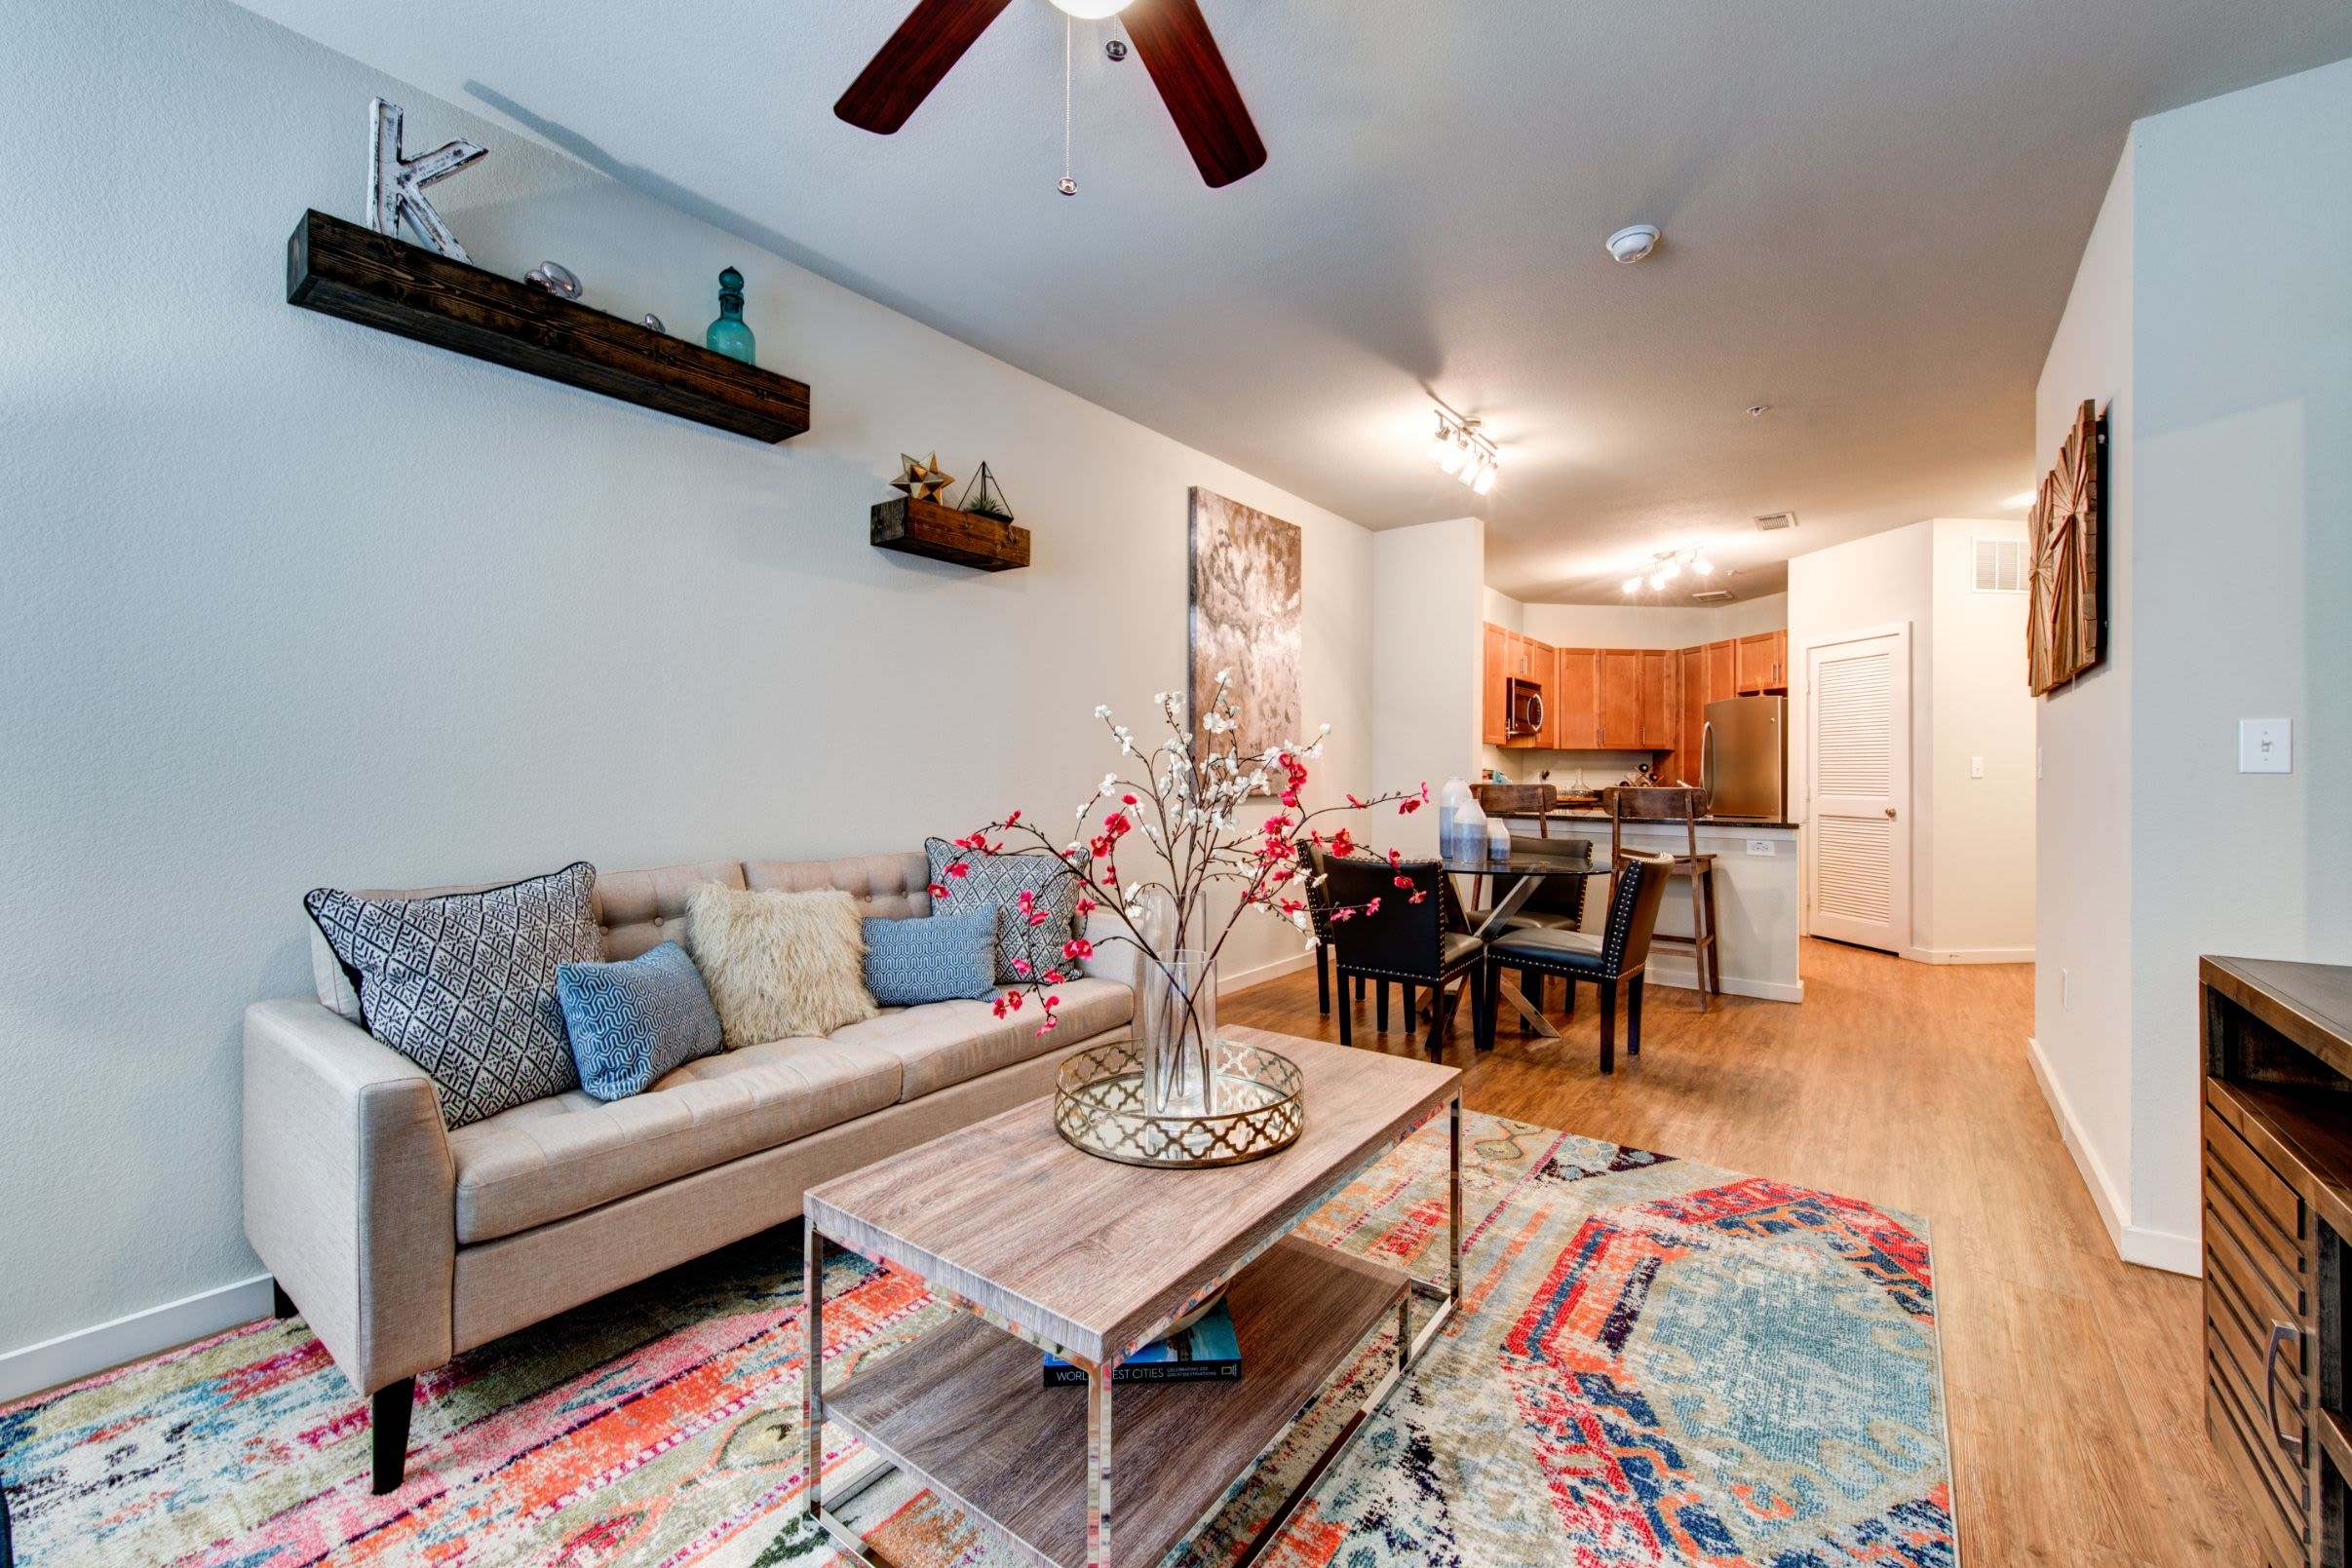 Open living area with wood floors and a large rug at The Marq on West 7th in Fort Worth, Texas